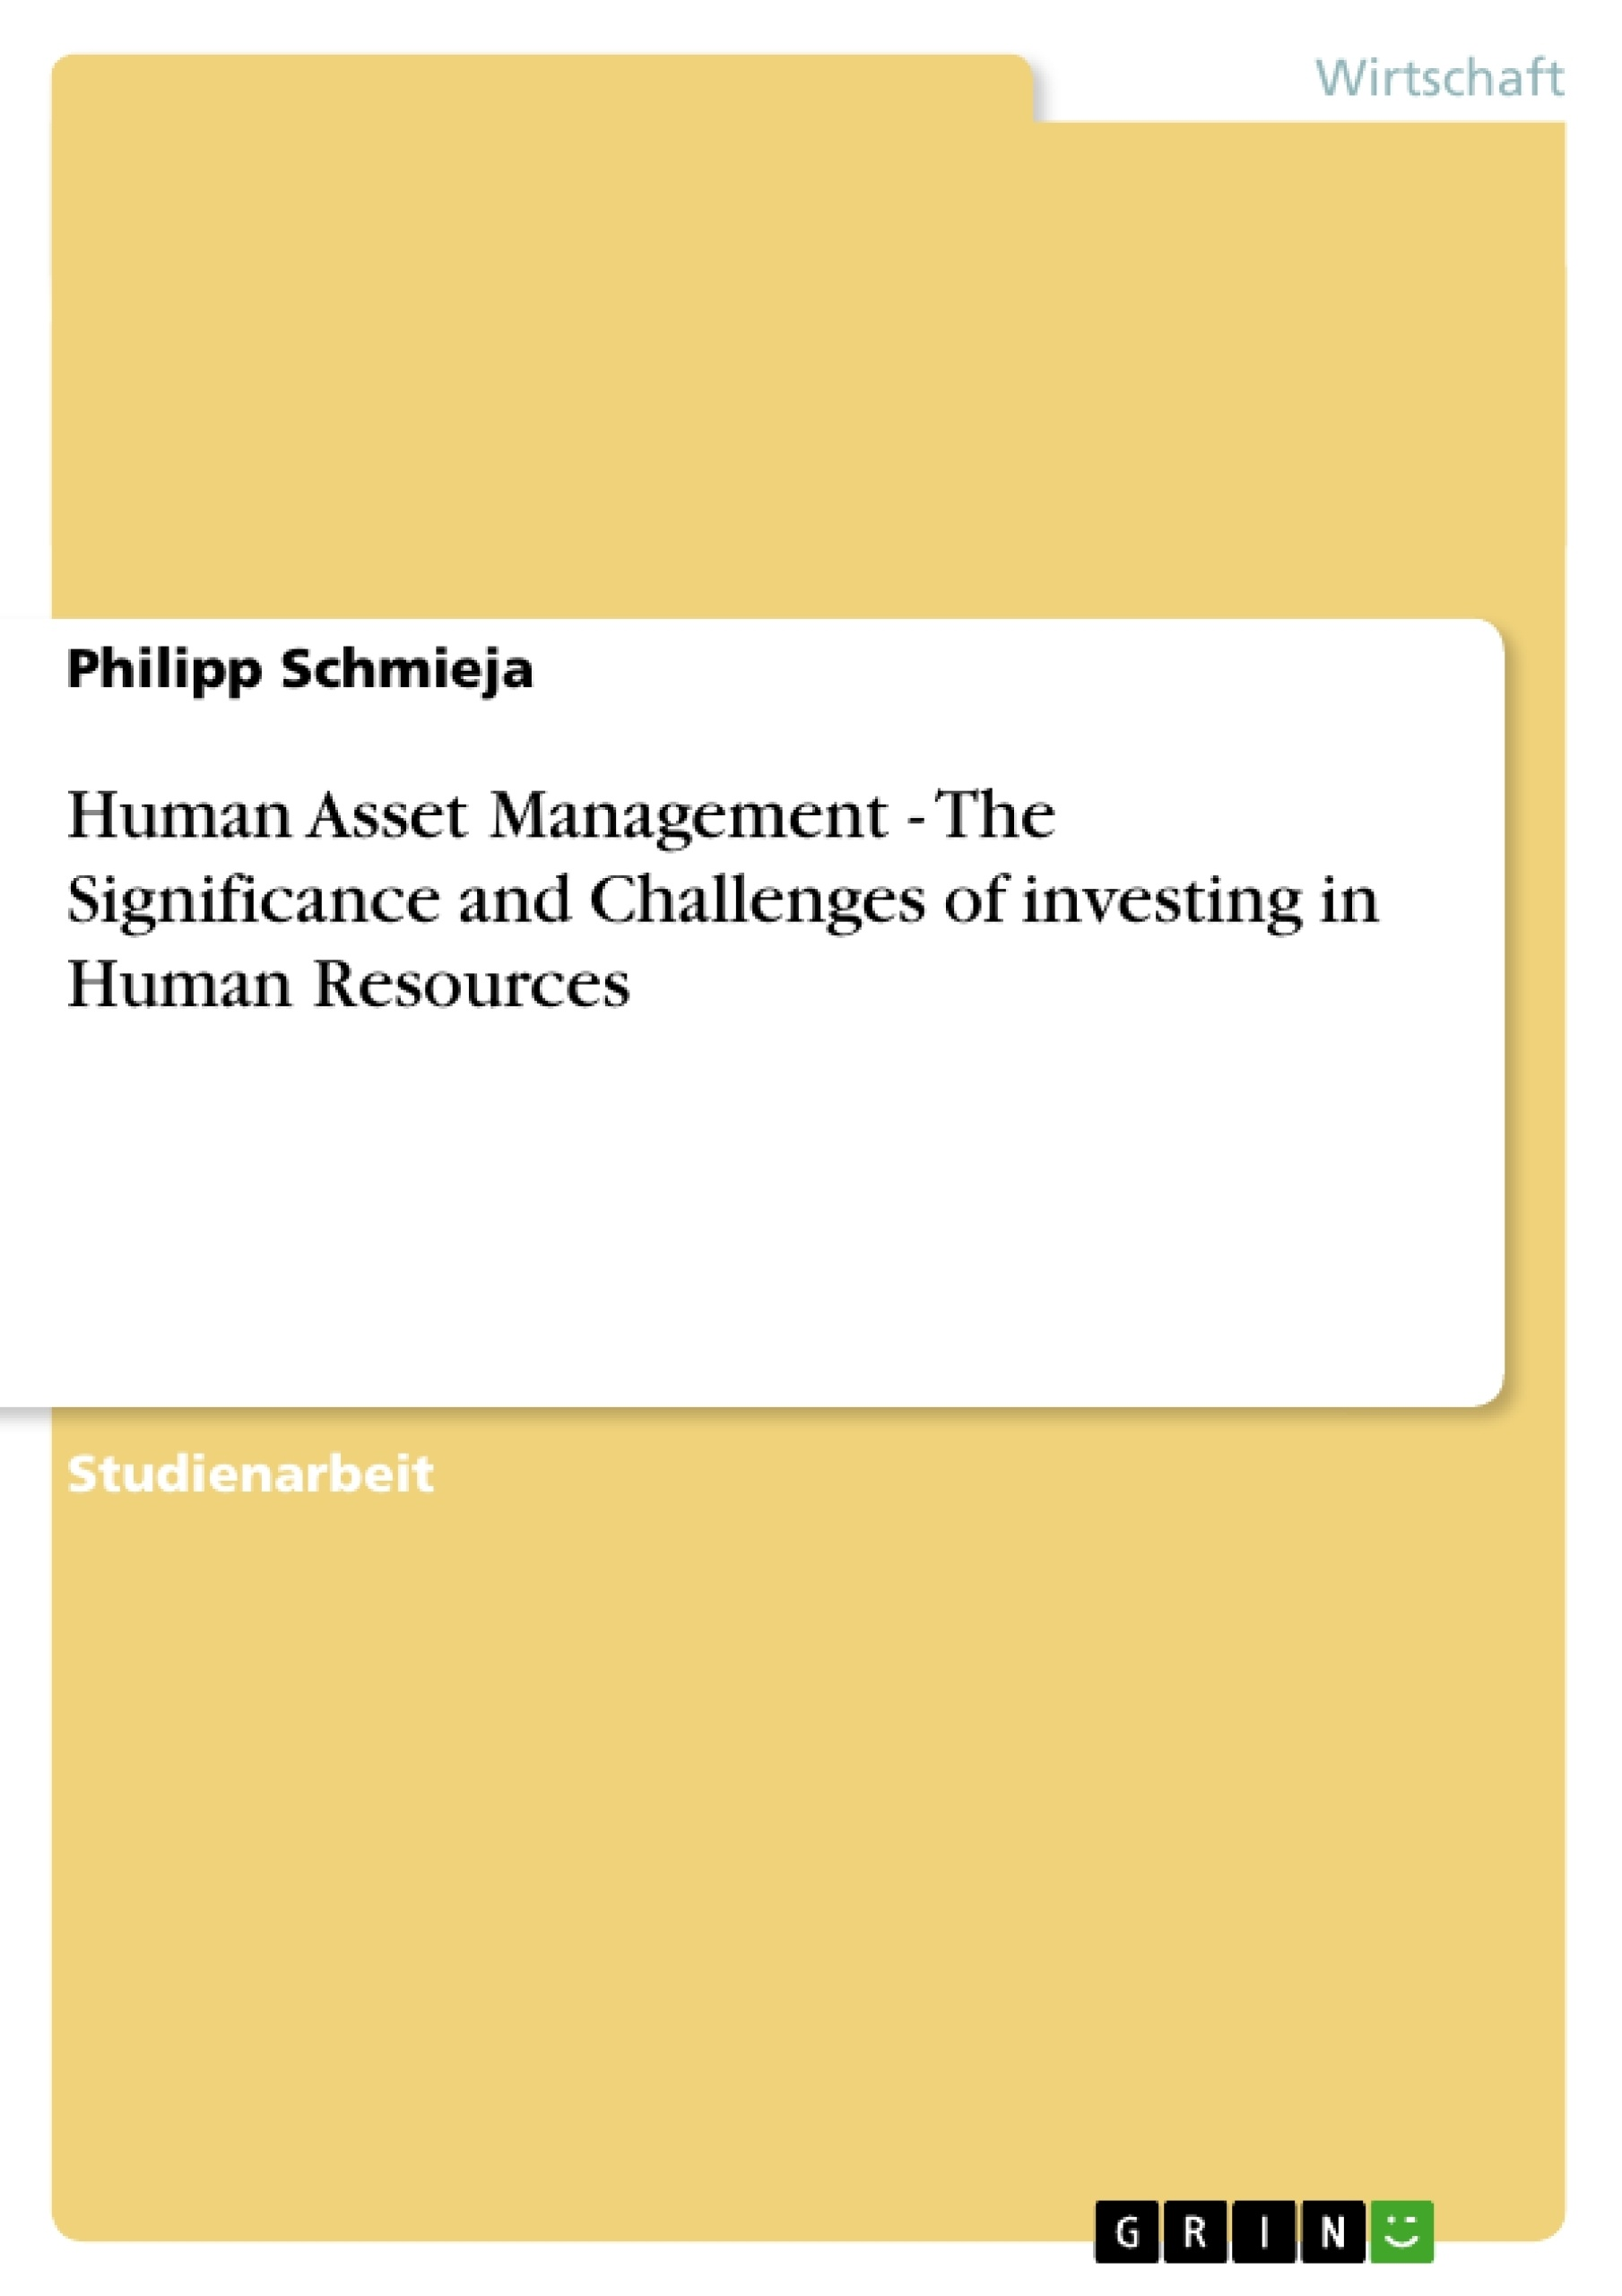 Titel: Human Asset Management - The Significance and Challenges of investing in Human Resources